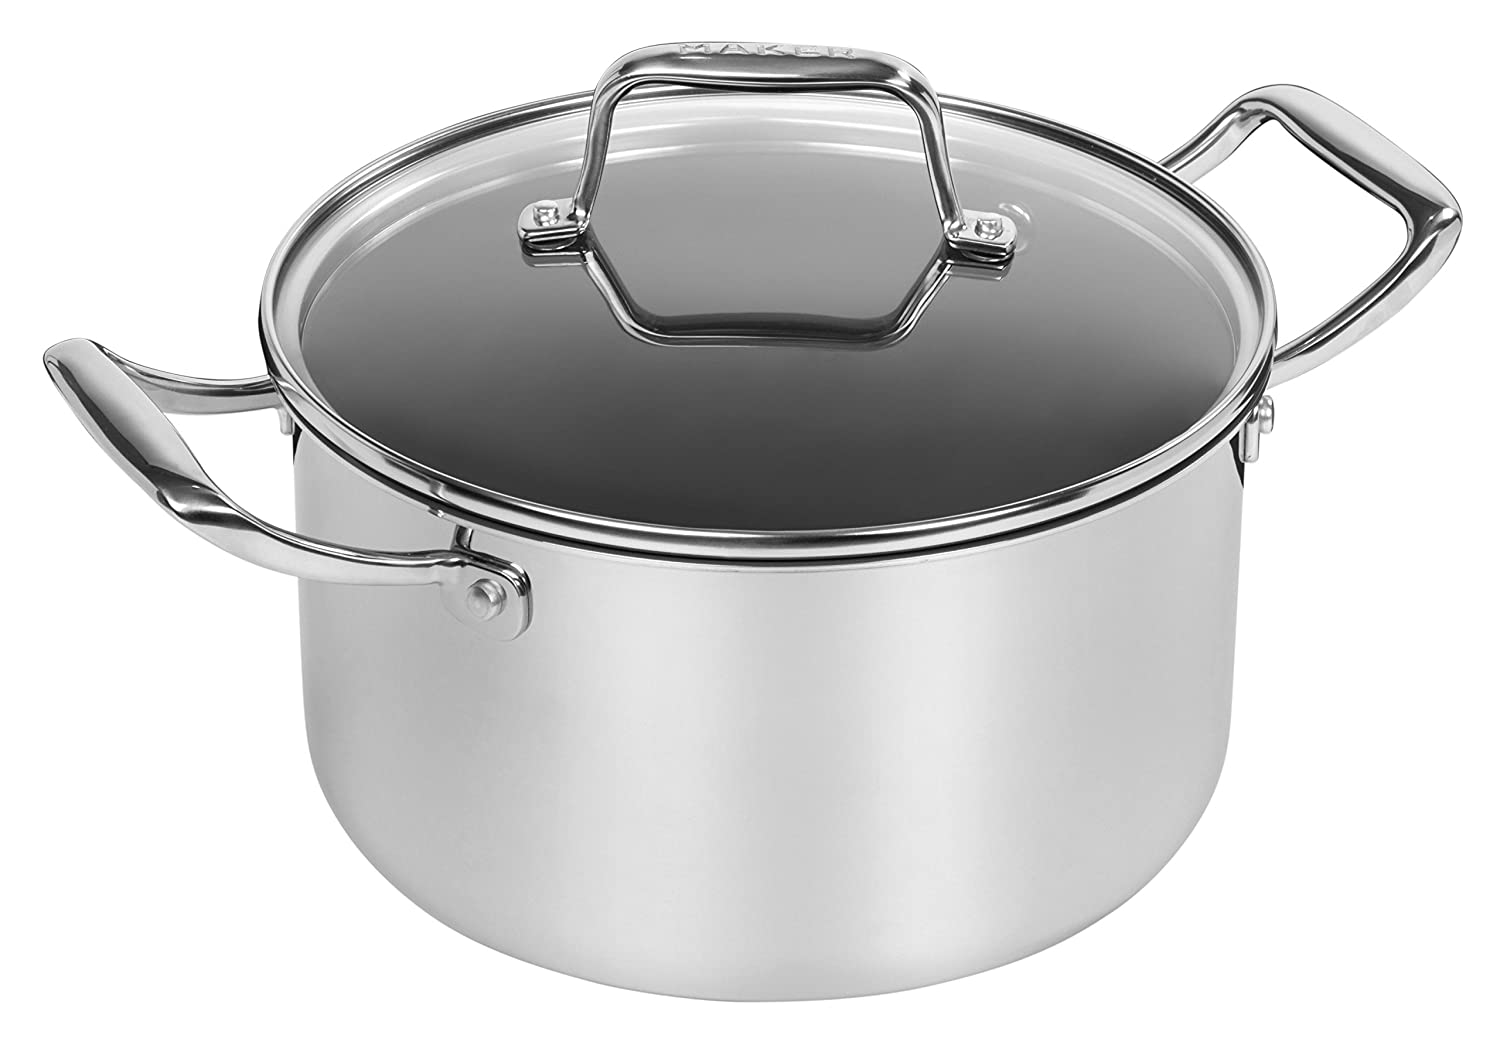 MAKER Homeware 5 Quart Stainless Steel Covered Dutch Oven with Nonstick Ceramic Coating